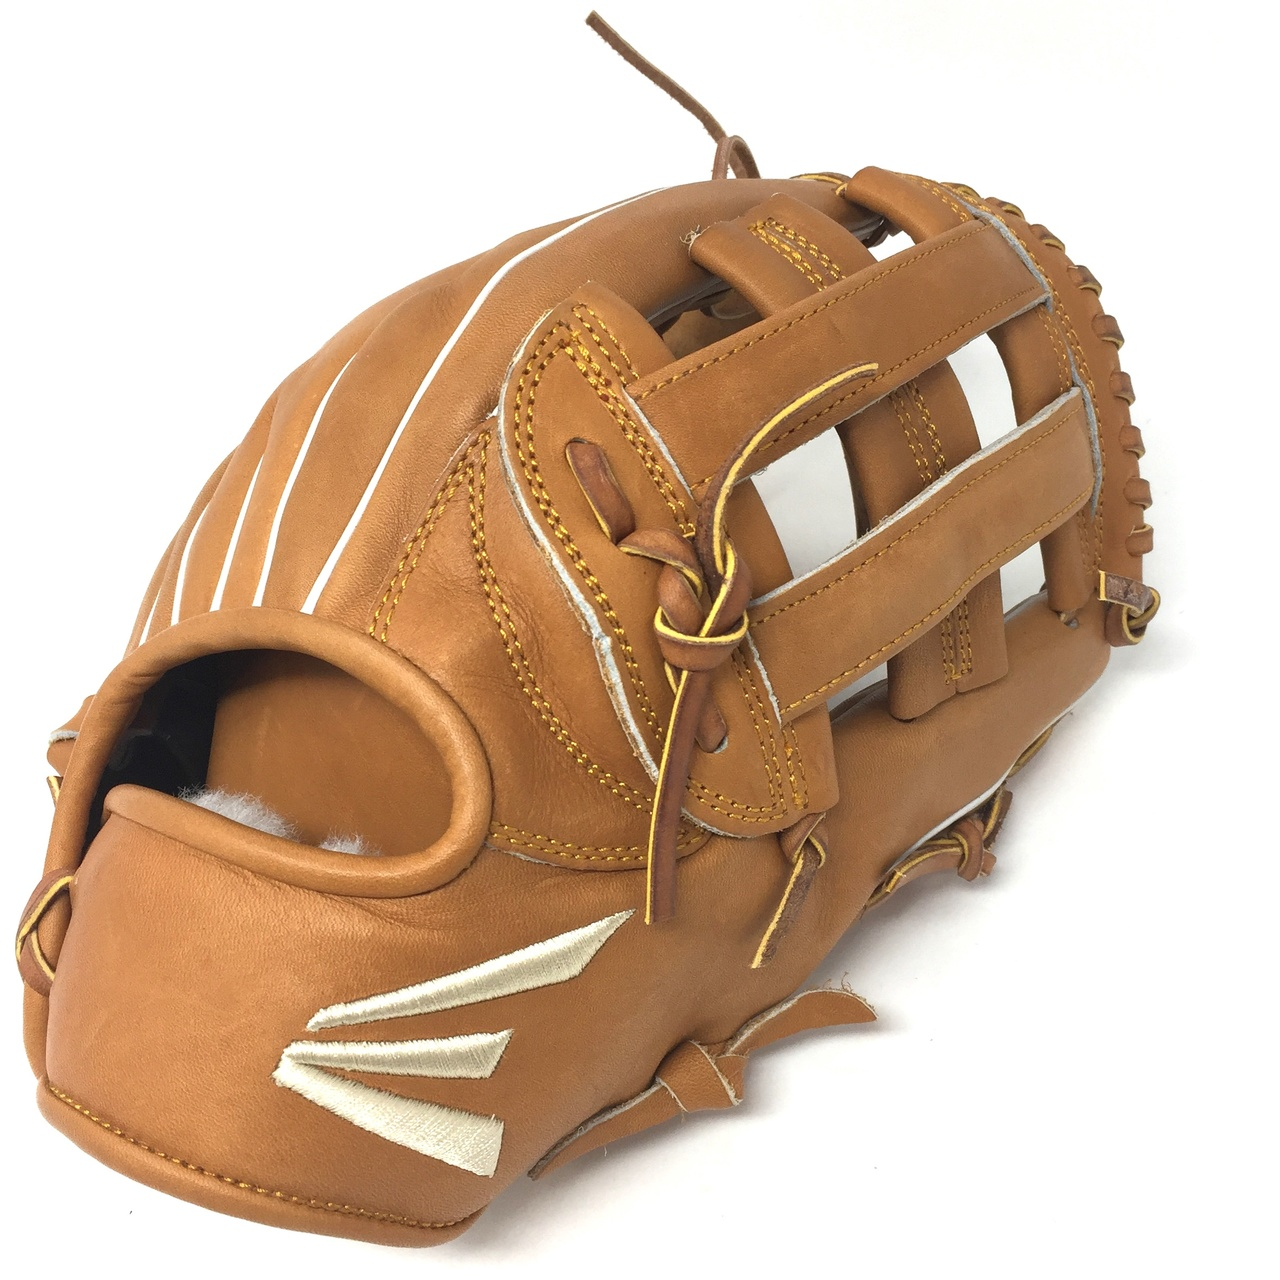 easton-small-batch-38-baseball-glove-11-75-right-hand-throw SMB38-C33-RightHandThrow Easton 628412242353 <span>Eastons Small Batch project focuses on ball glove development using only